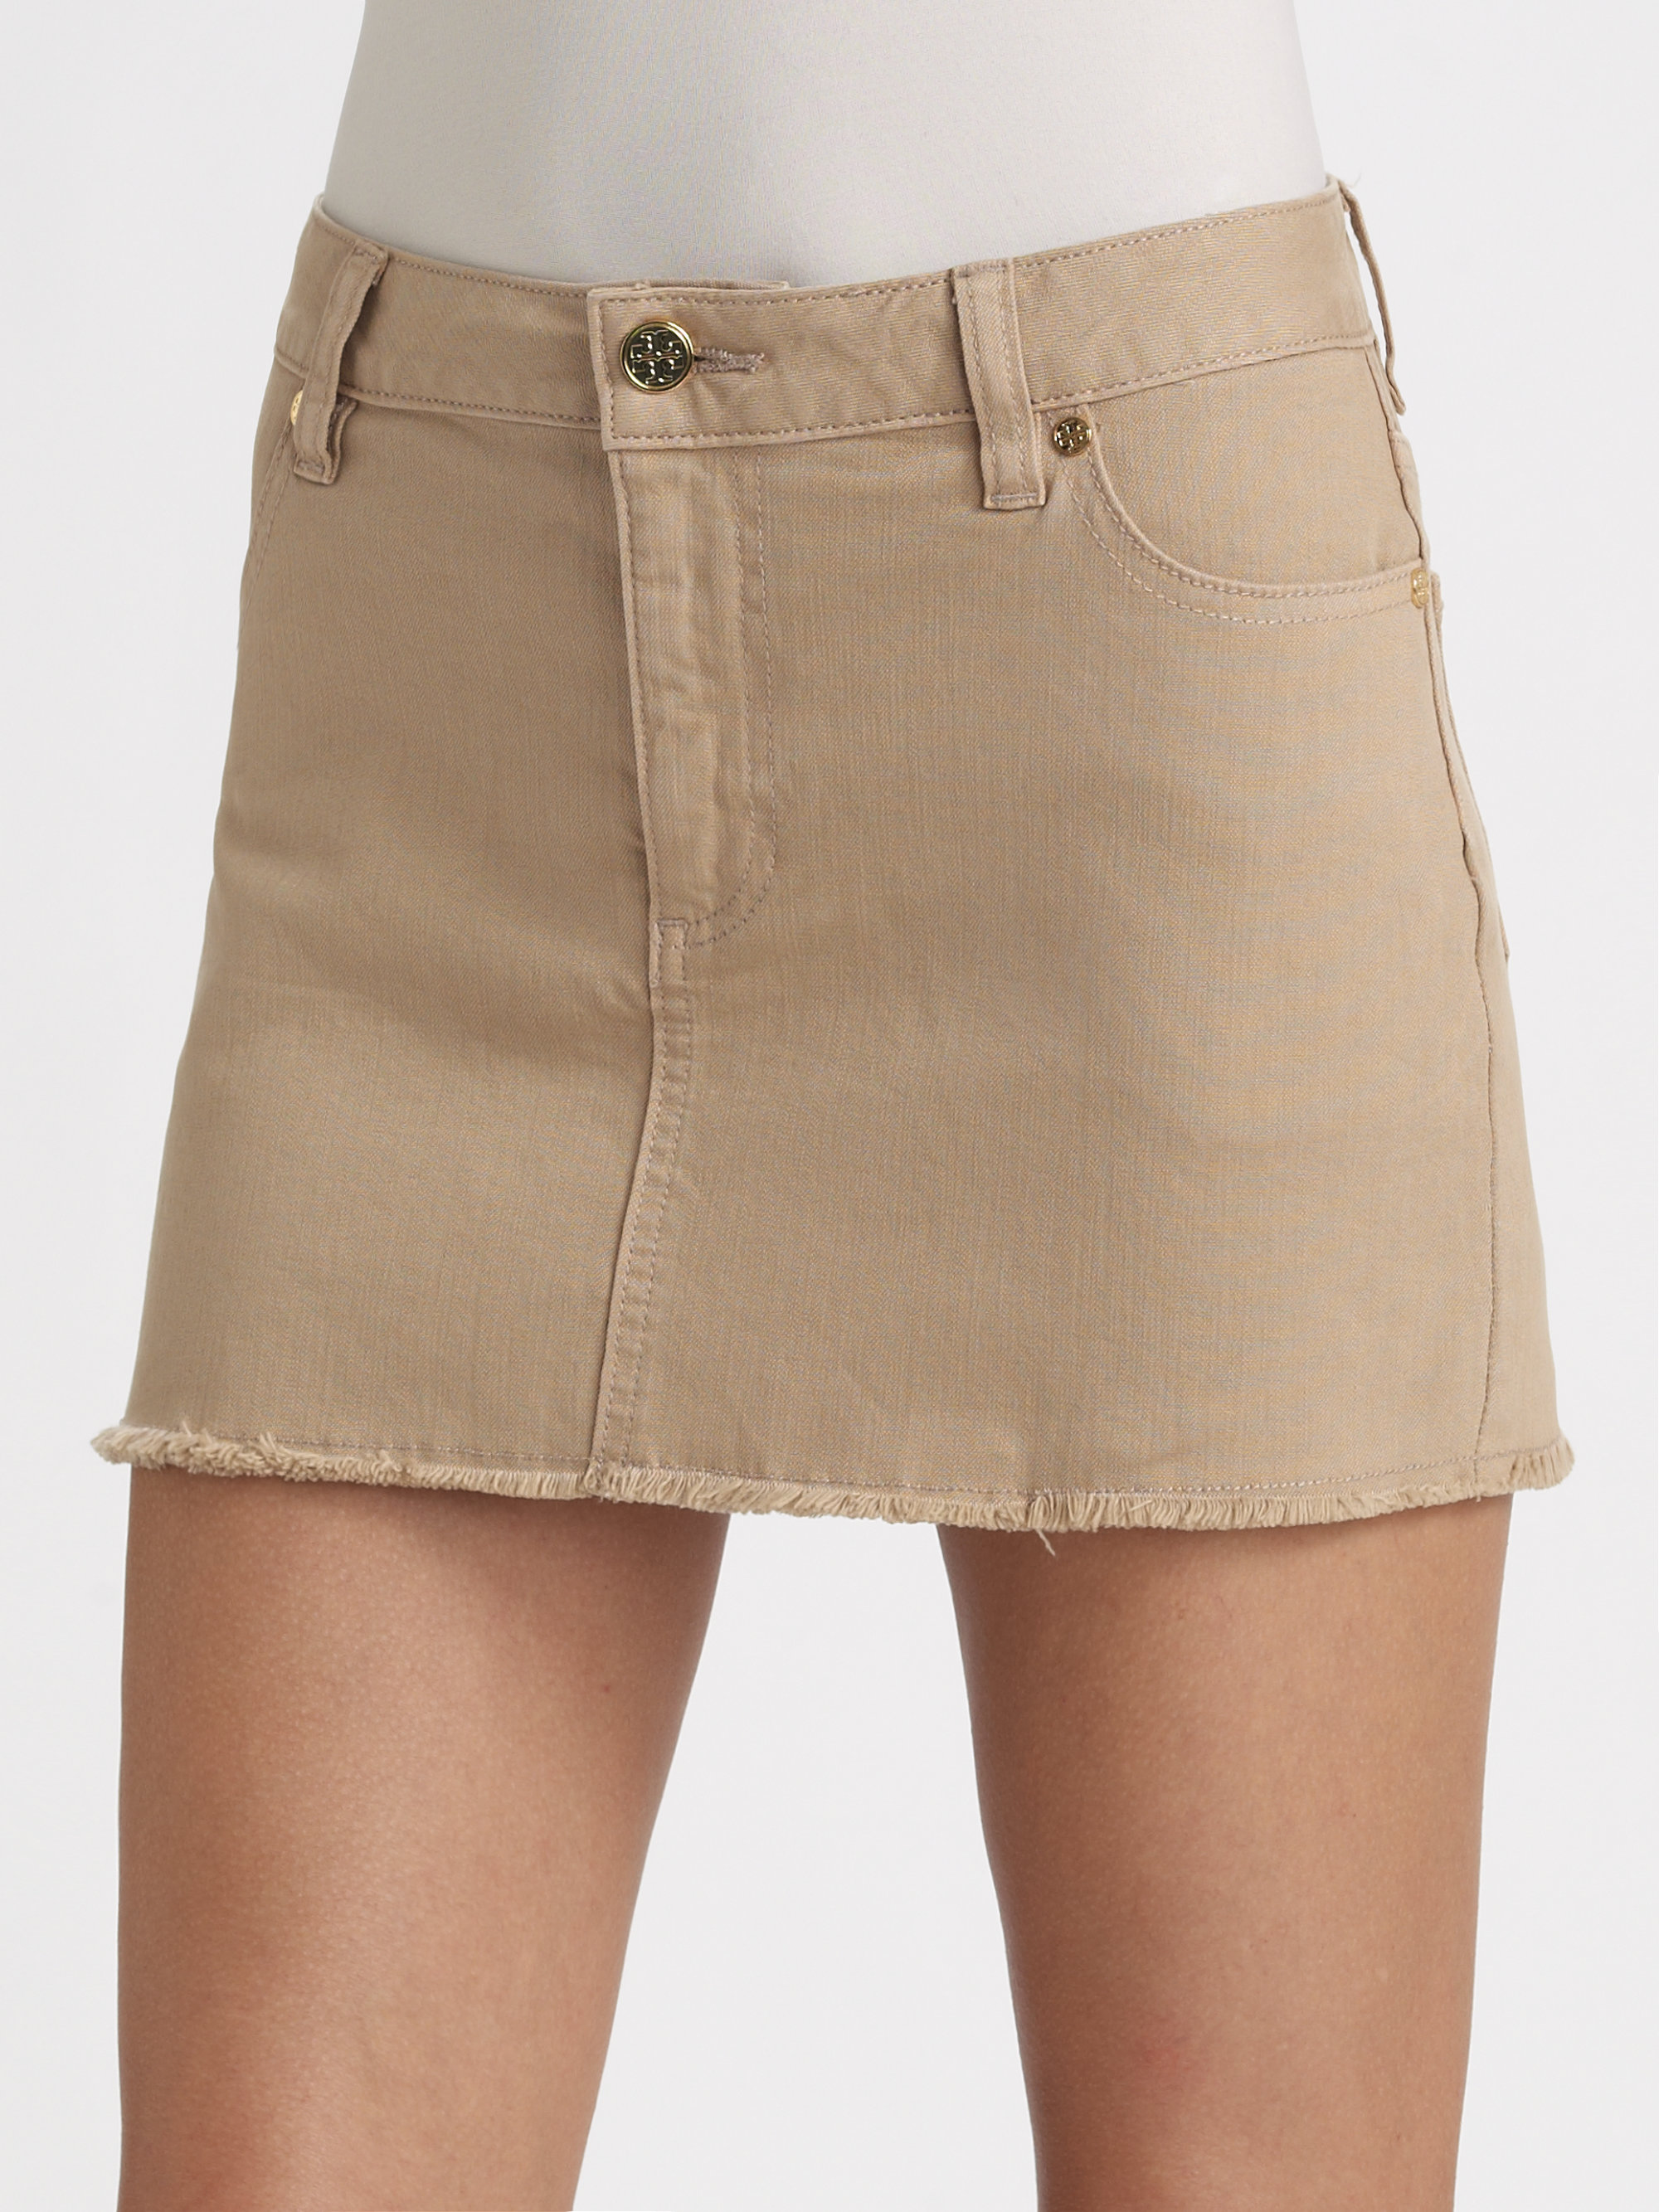 Tory burch Denim Mini Skirt in Brown | Lyst